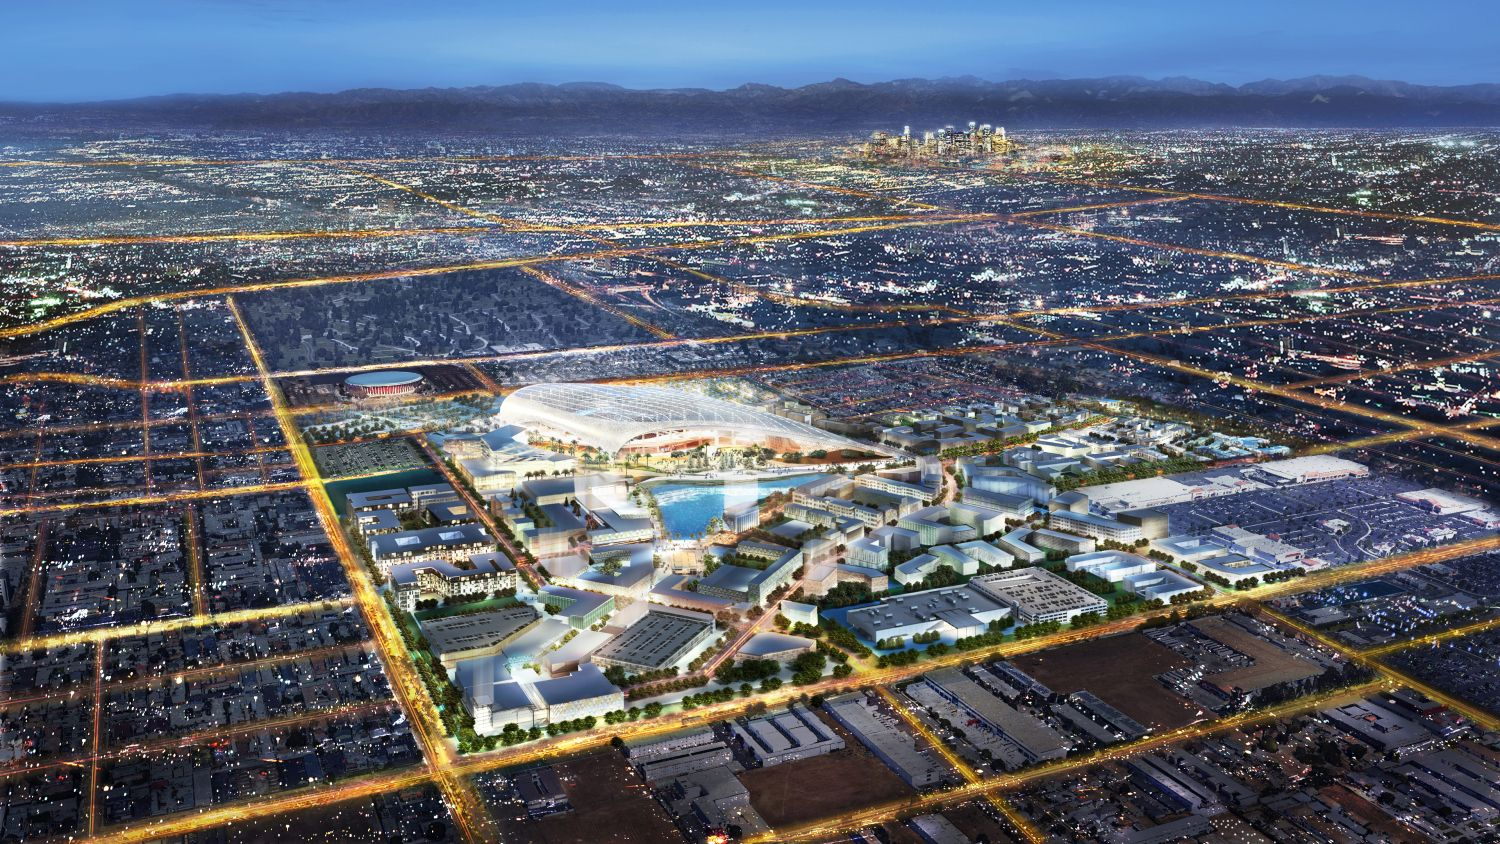 Here S The New Neighborhood Rising Around La S Nfl Stadium